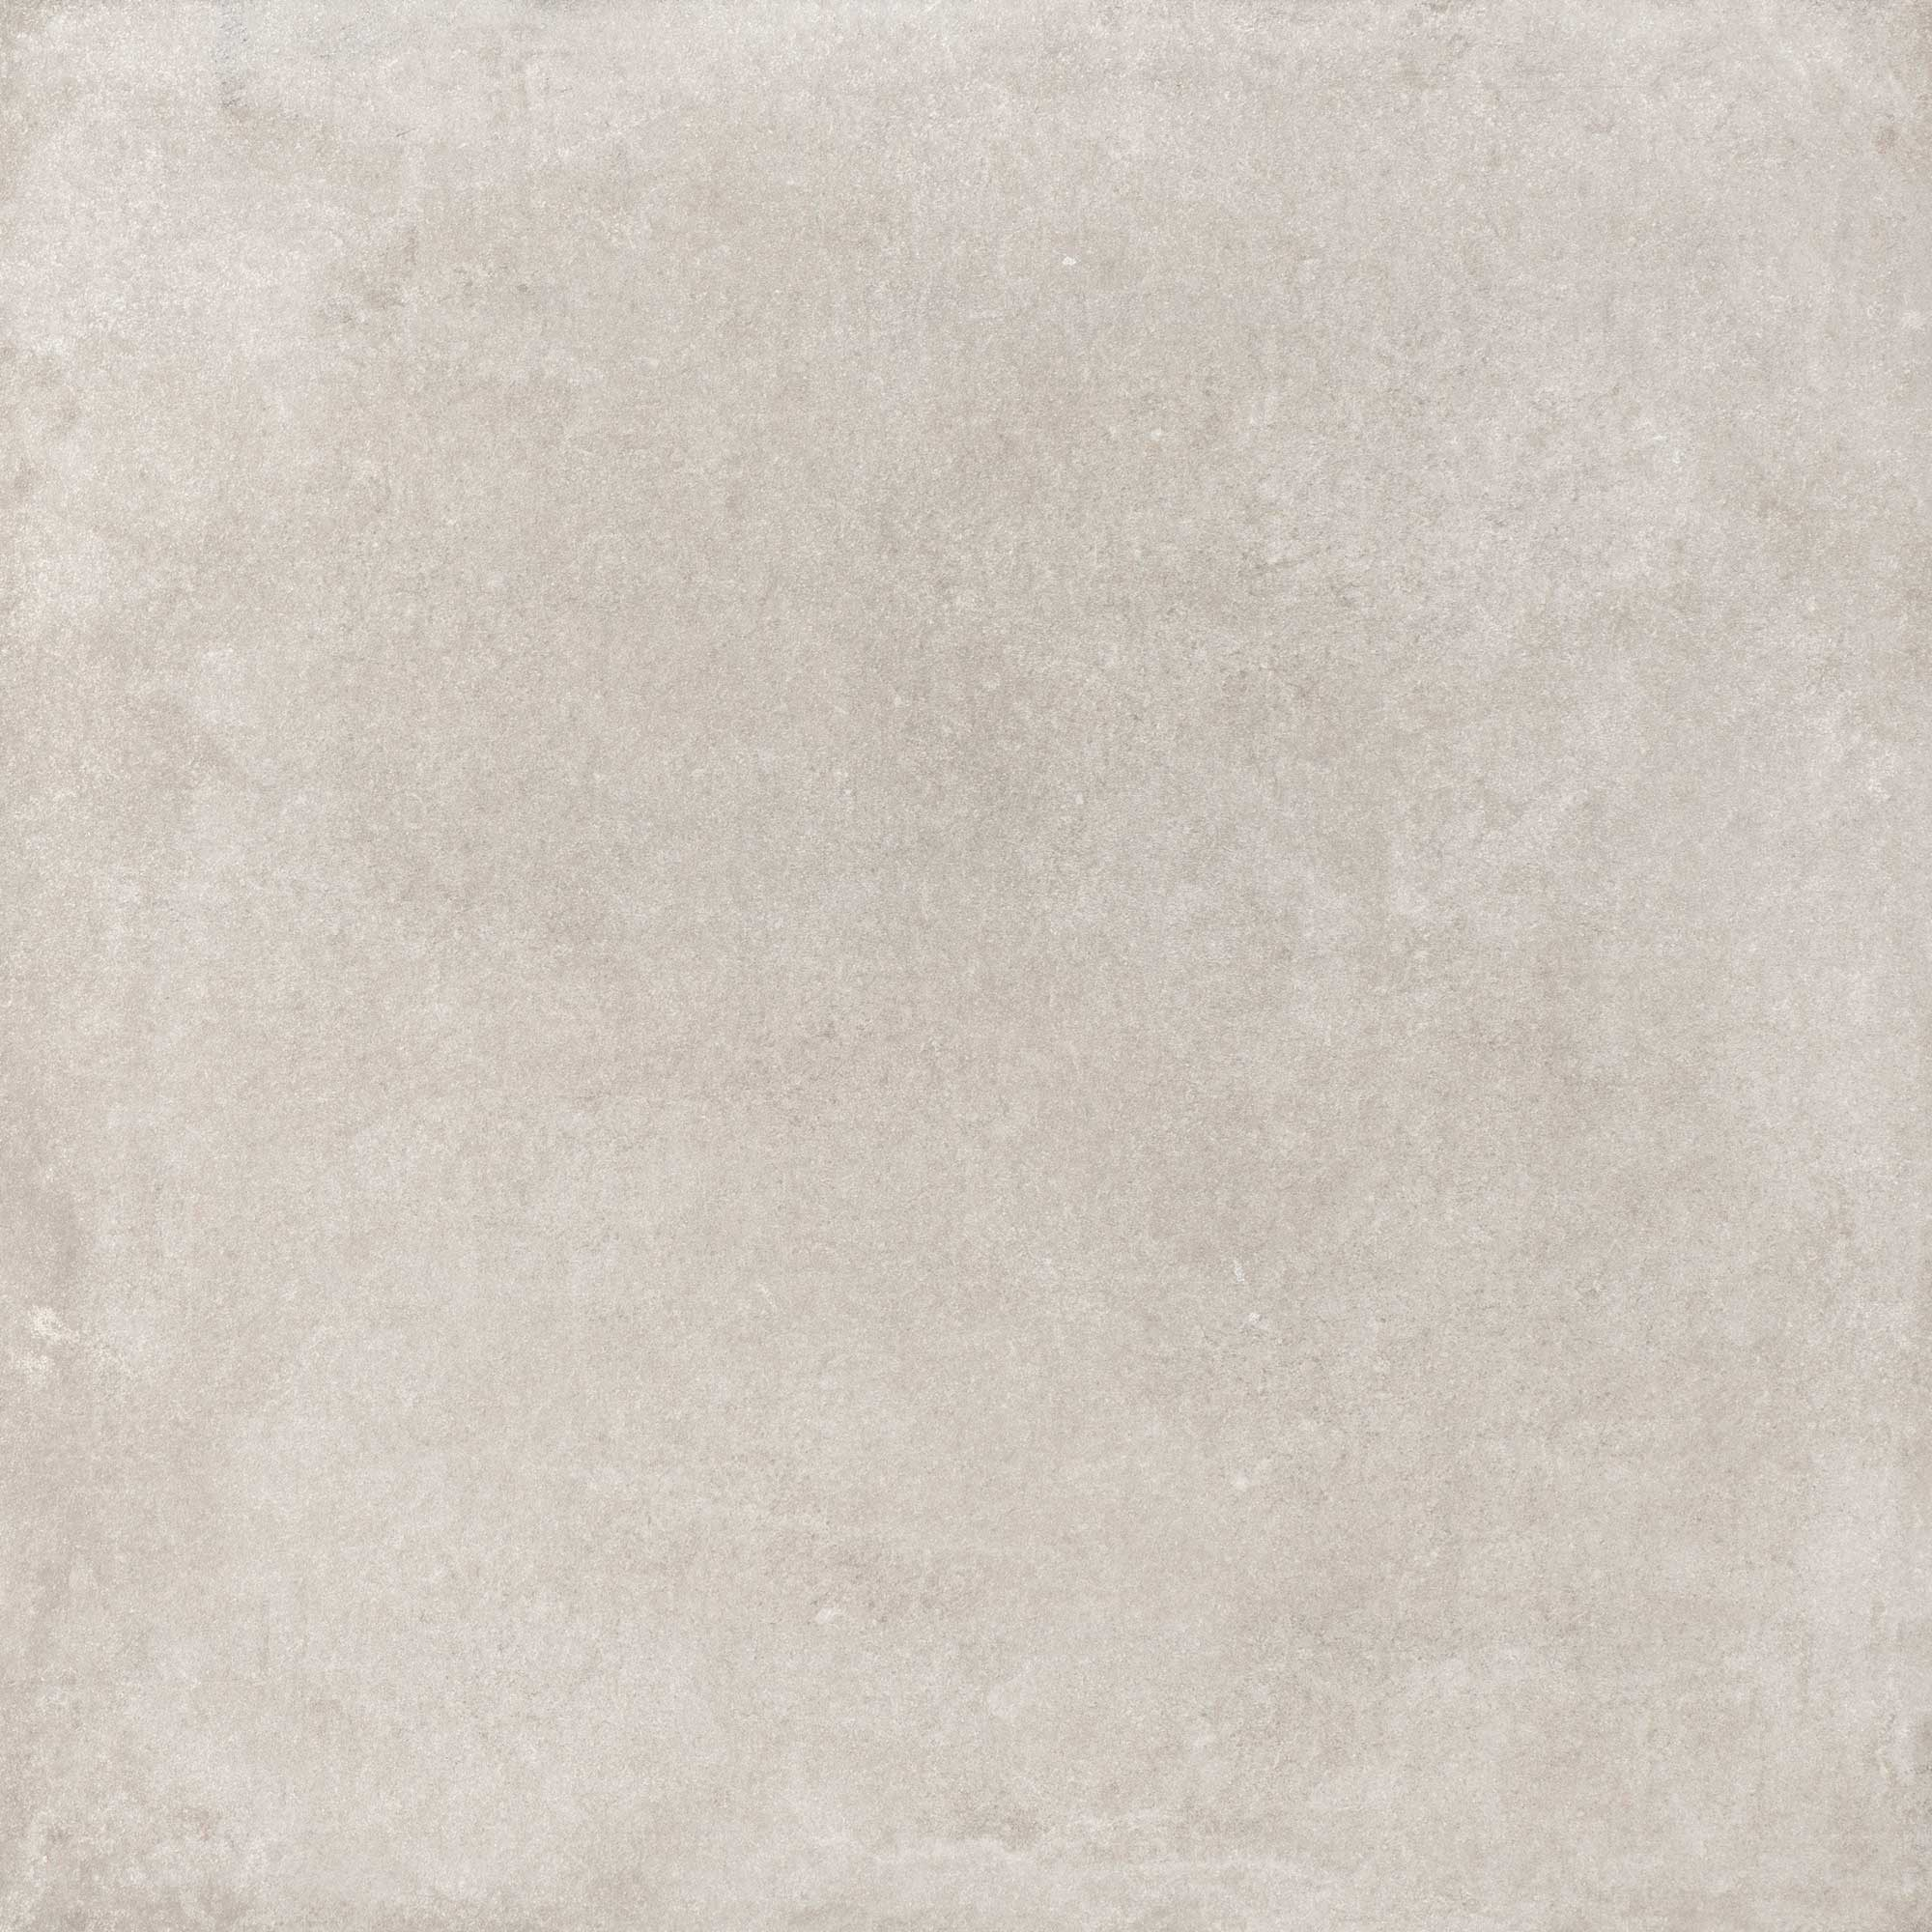 Klinker Bricmate Z Concrete Light Grey 60x60 cm